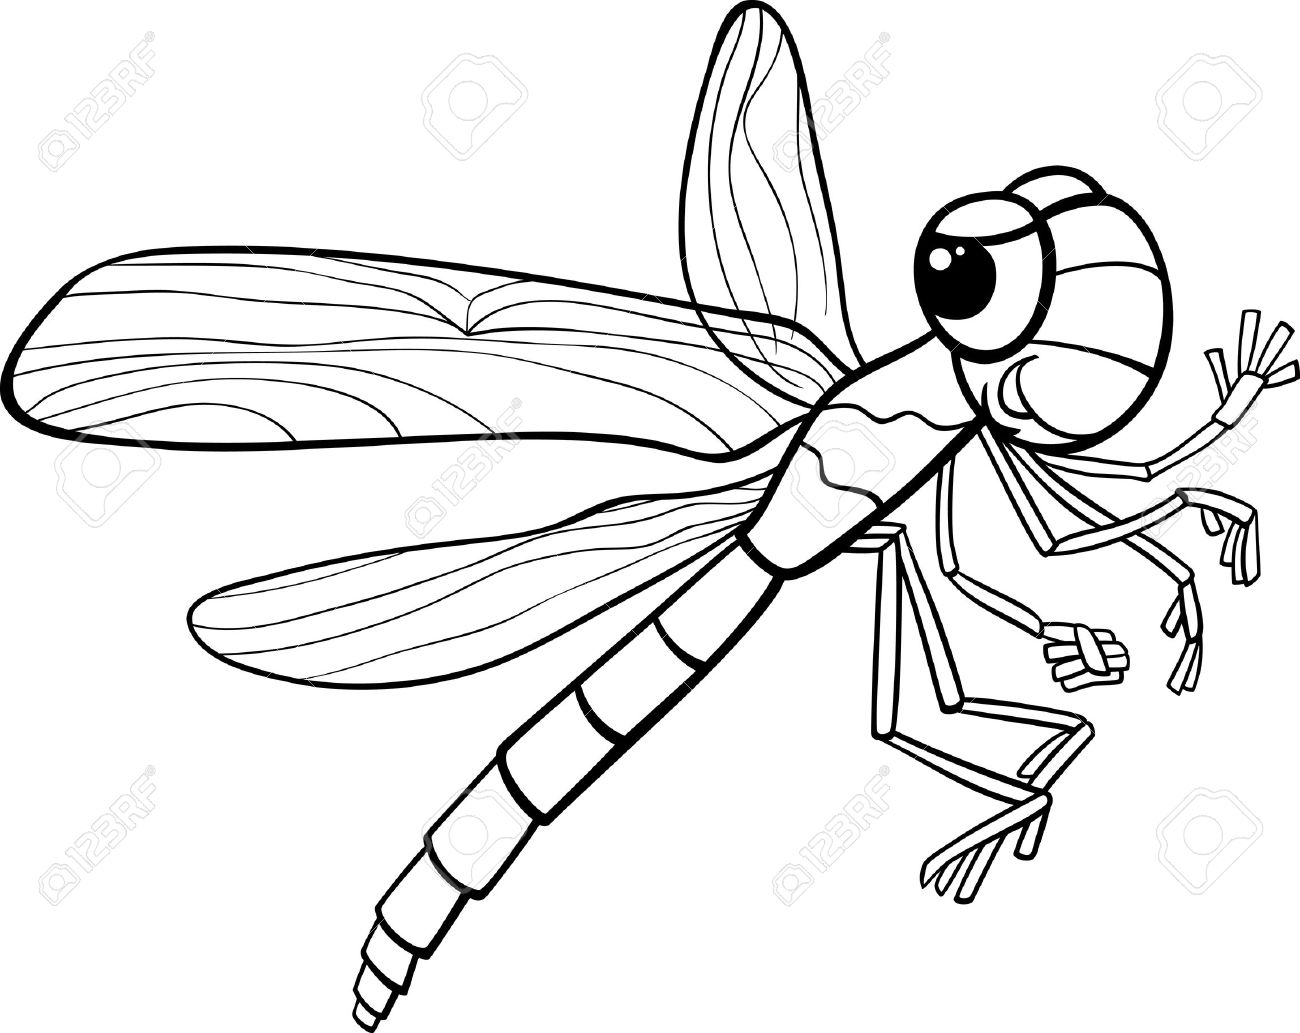 Black And White Cartoon Illustration Of Funny Dragonfly Insect Royalty Free Cliparts Vectors And Stock Illustration Image 26777605